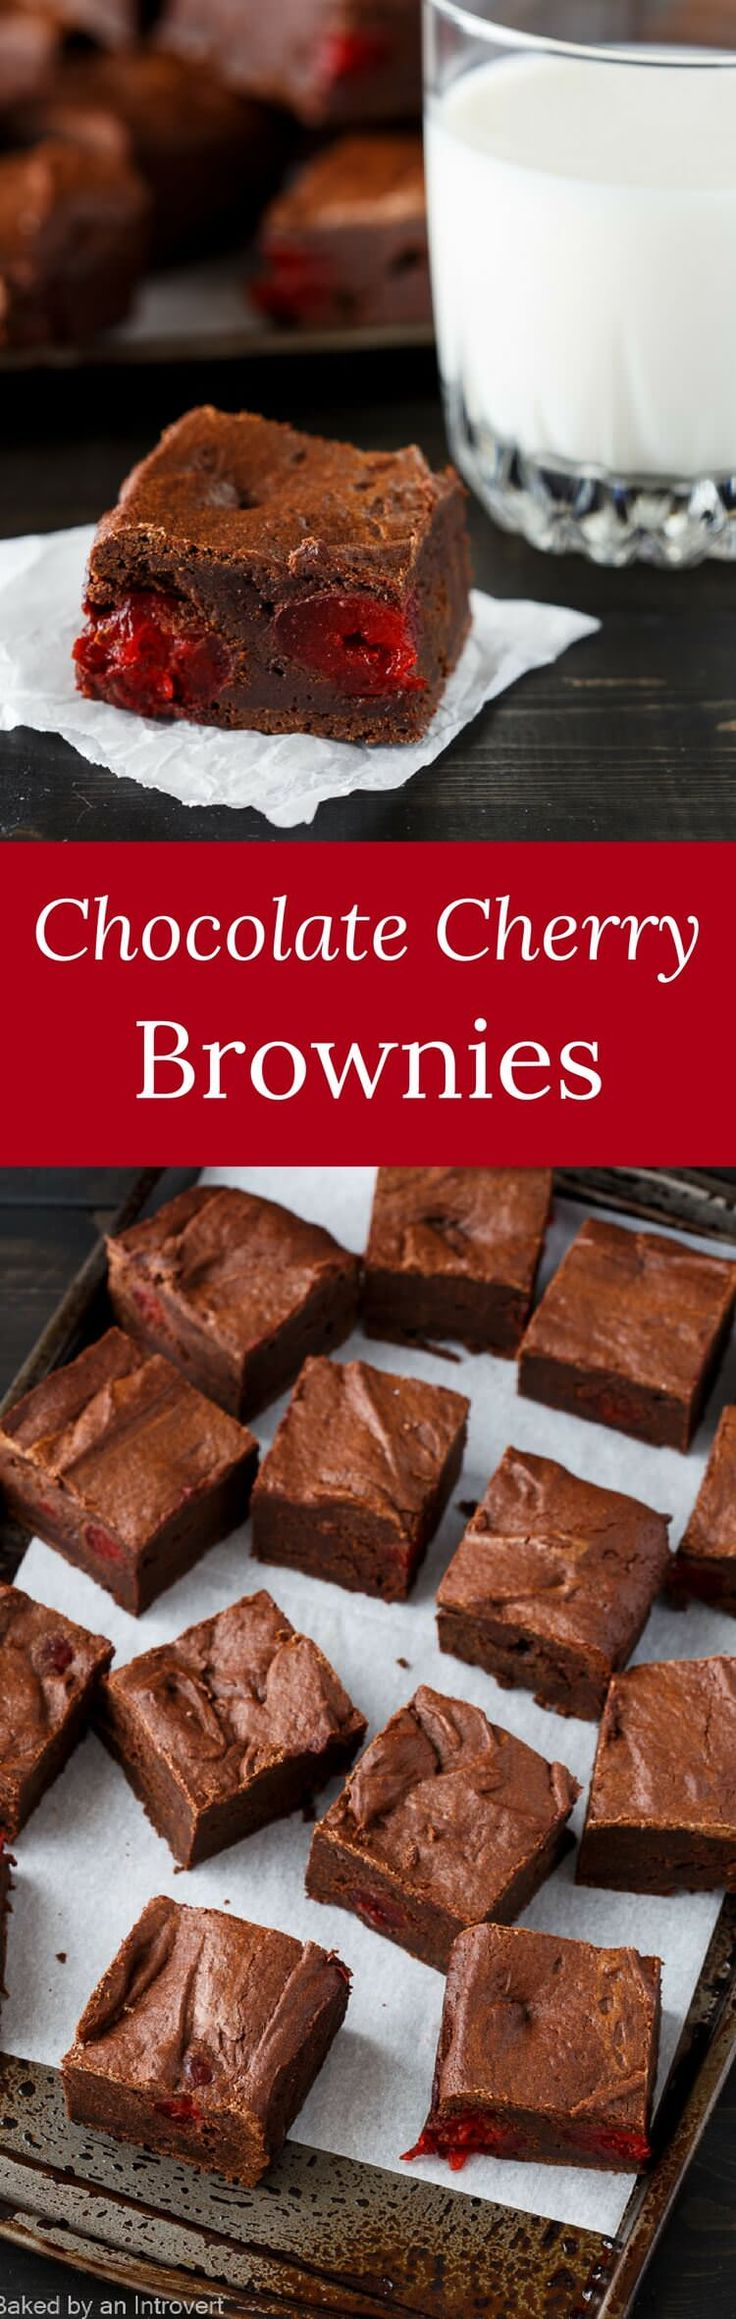 Enjoy a classic flavor combination with this easy recipe for Chocolate Cherry Brownies. This is sure to become a household favorite! via @introvertbaker